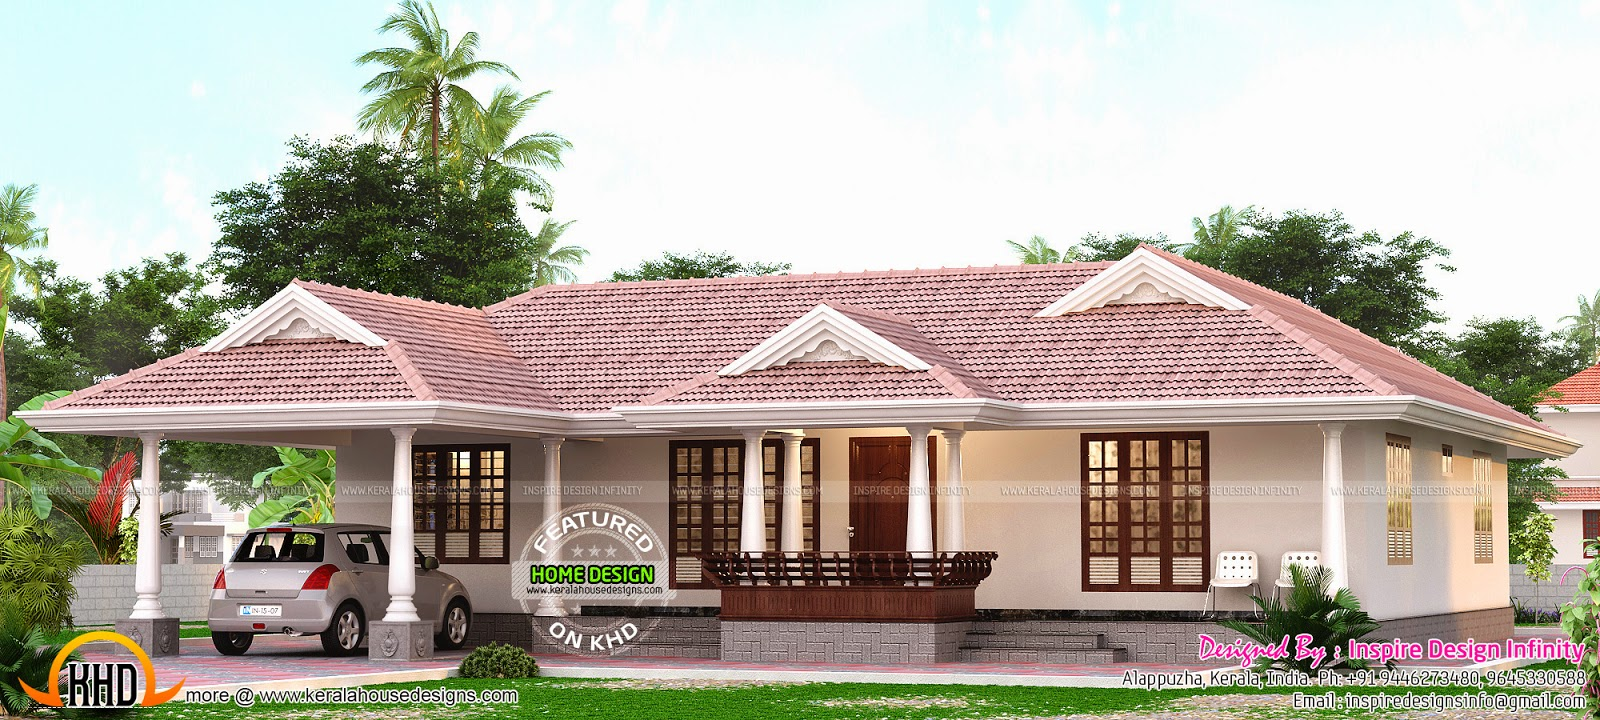 Kerala model single storied home kerala home design and for Kerala style house plans with photos